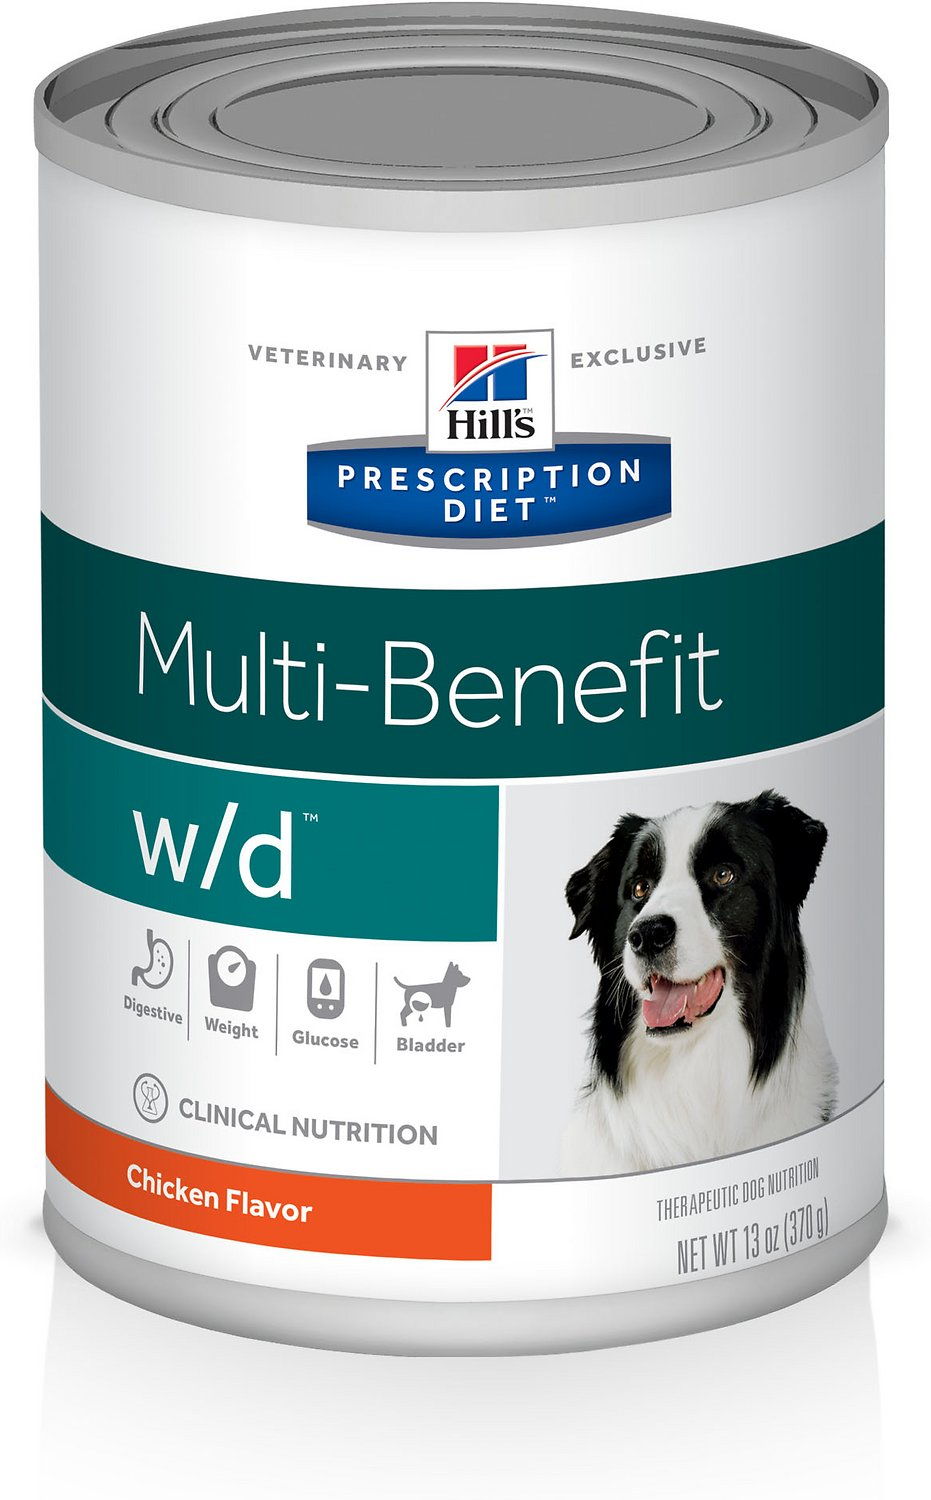 Hill's Prescription Diet w/d Multi-Benefit Digestive, Weight, Glucose, Urinary Management Vegetable & Chicken Stew Canned Dog Food, 12.5-oz, case of 12